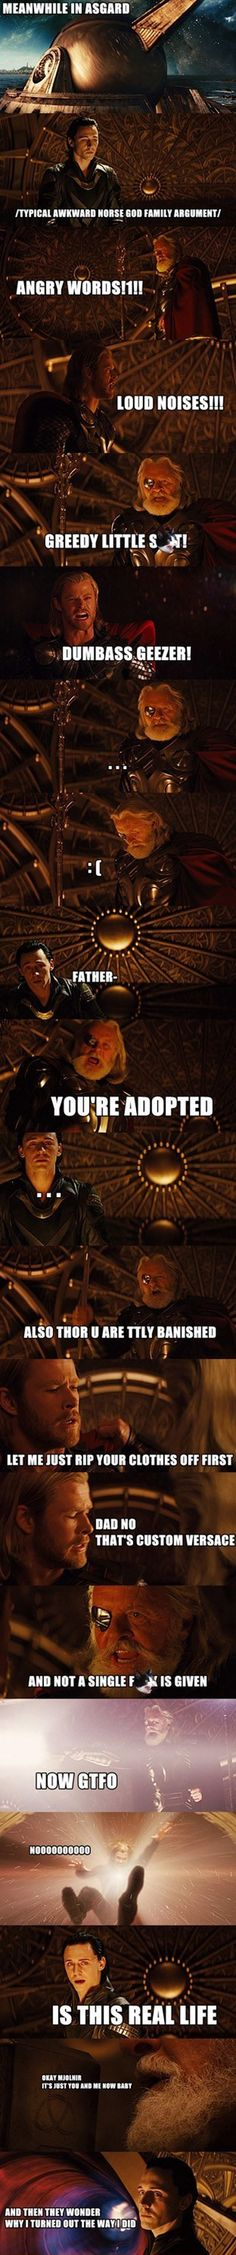 If Frigga had been there, she'd have told them all off and sent them to bed without dinner.